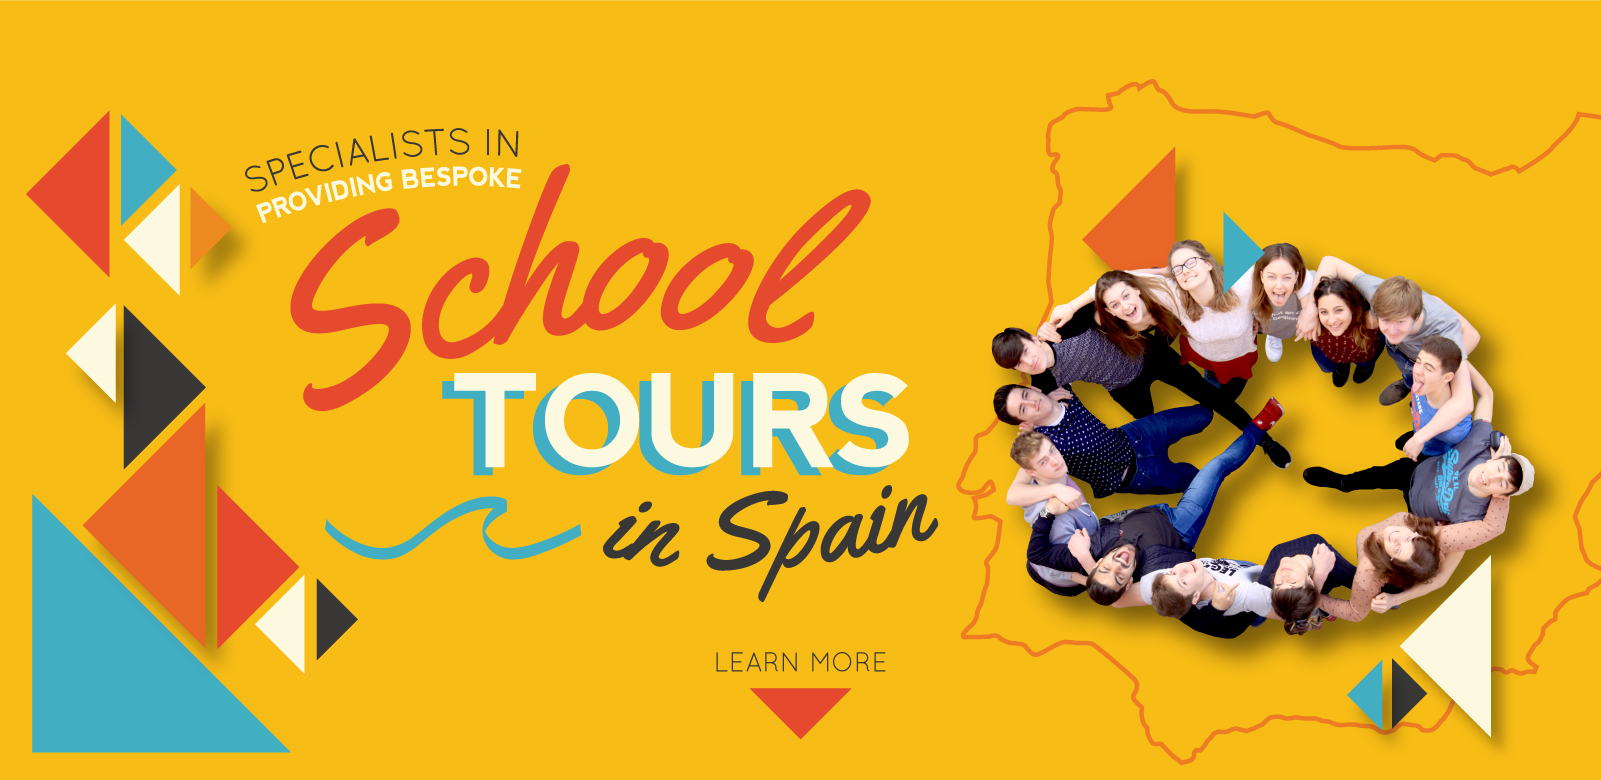 Bespoke School Tours to Spain